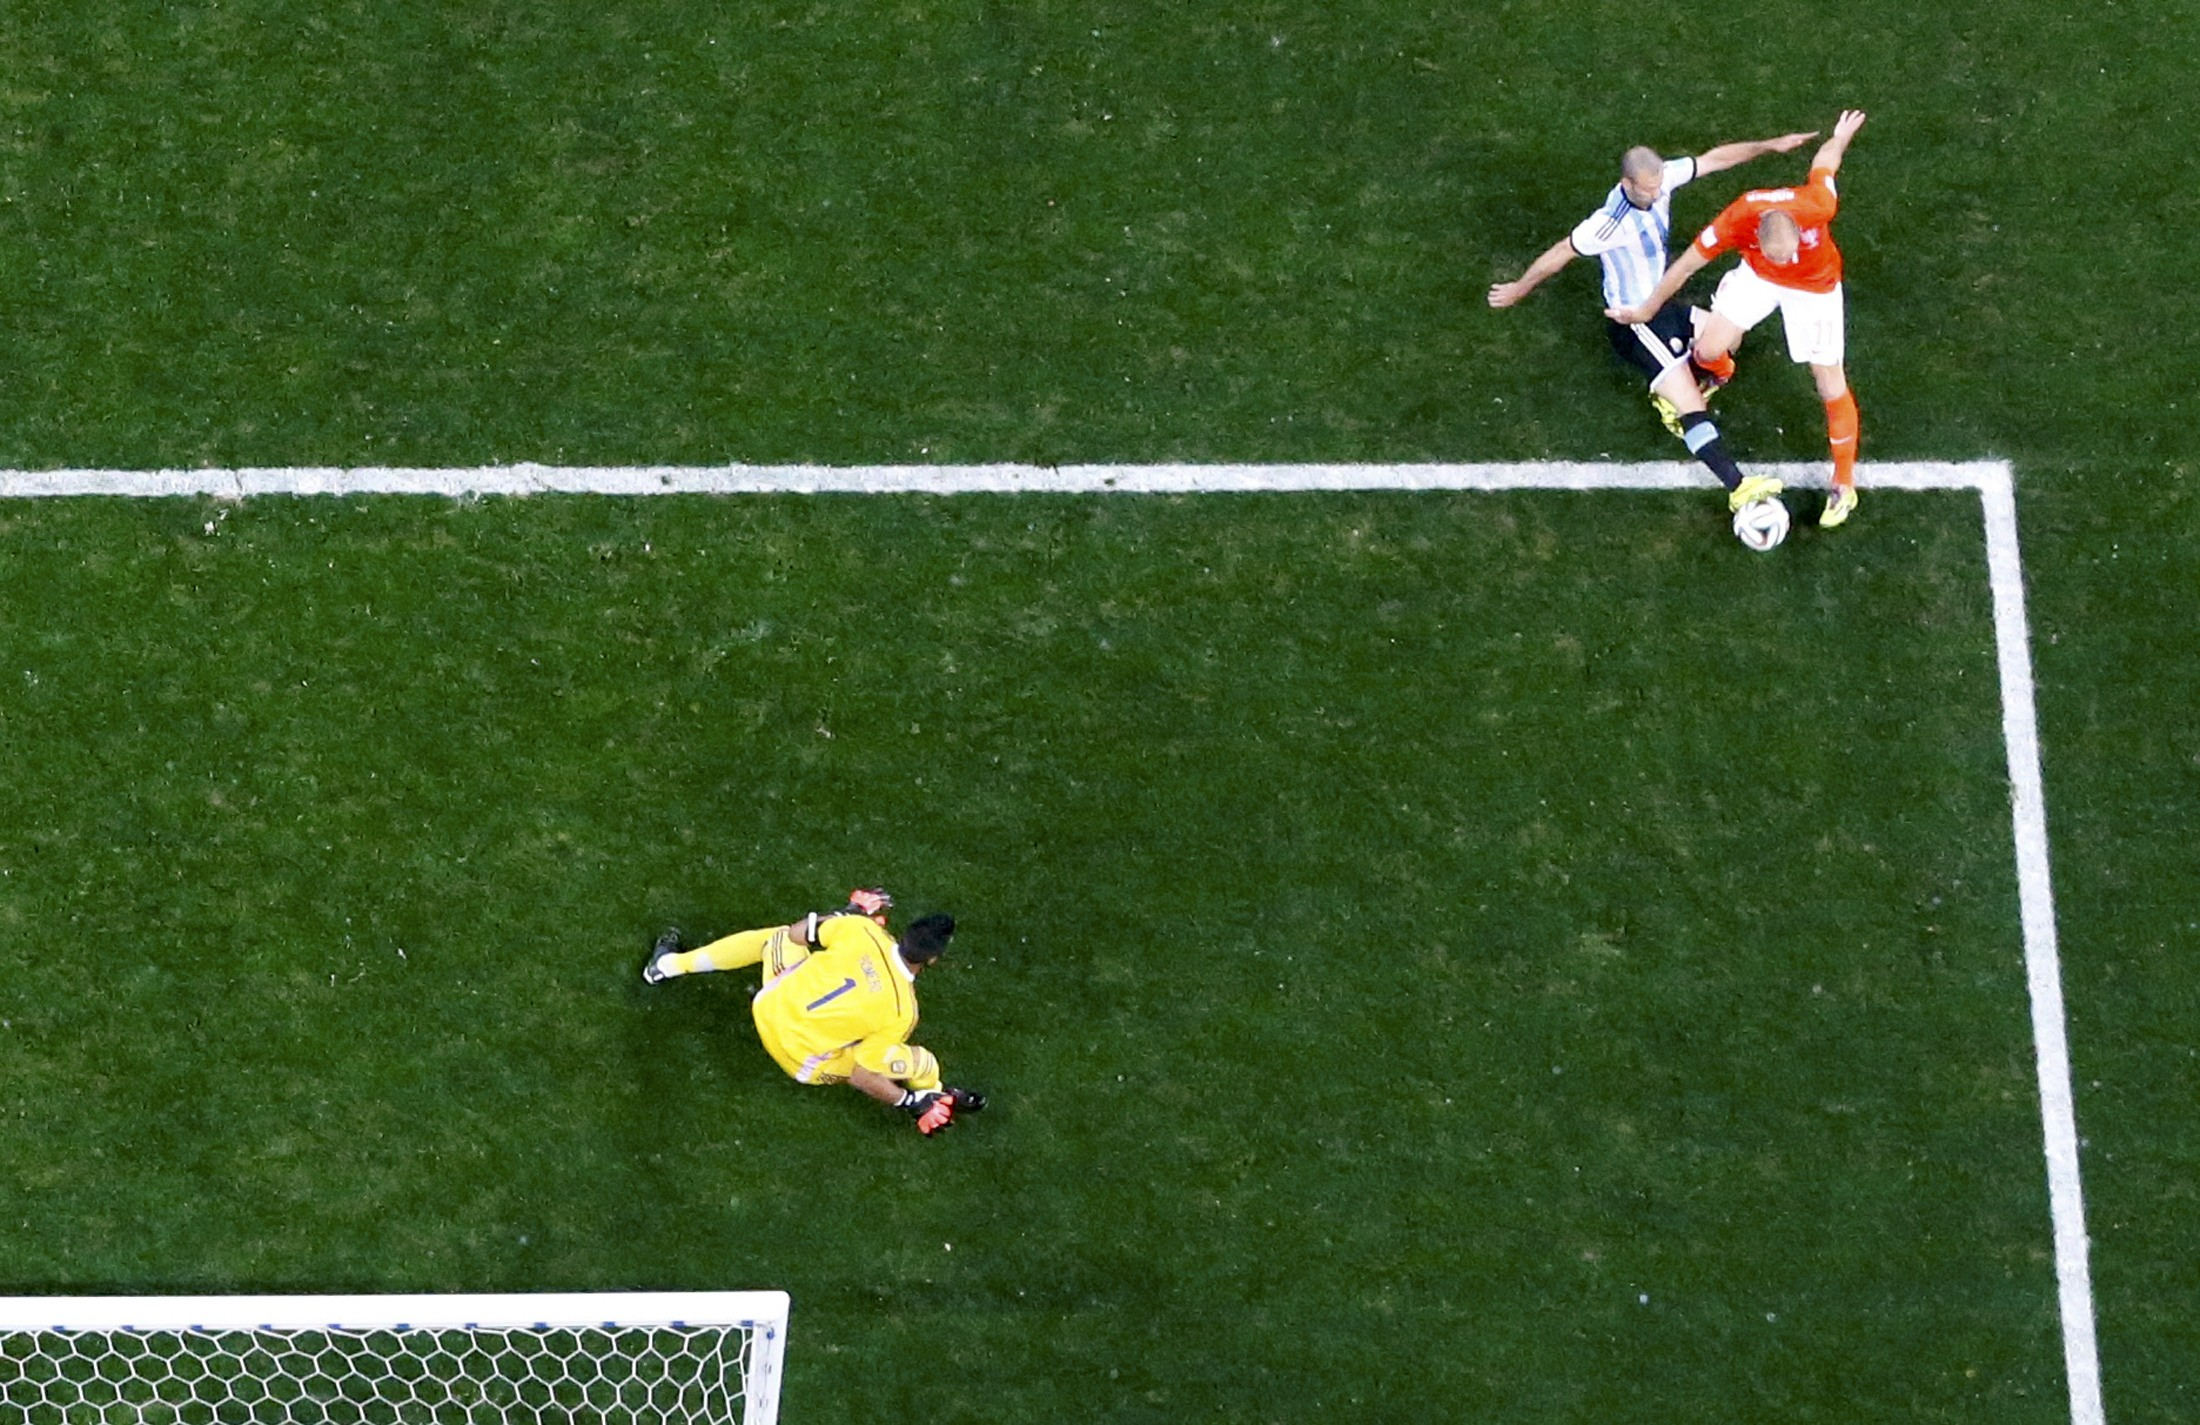 Argentina's Javier Mascherano deflects a shot by Arjen Robben of the Netherlands during their 2014 World Cup semi-finals at the Corinthians arena